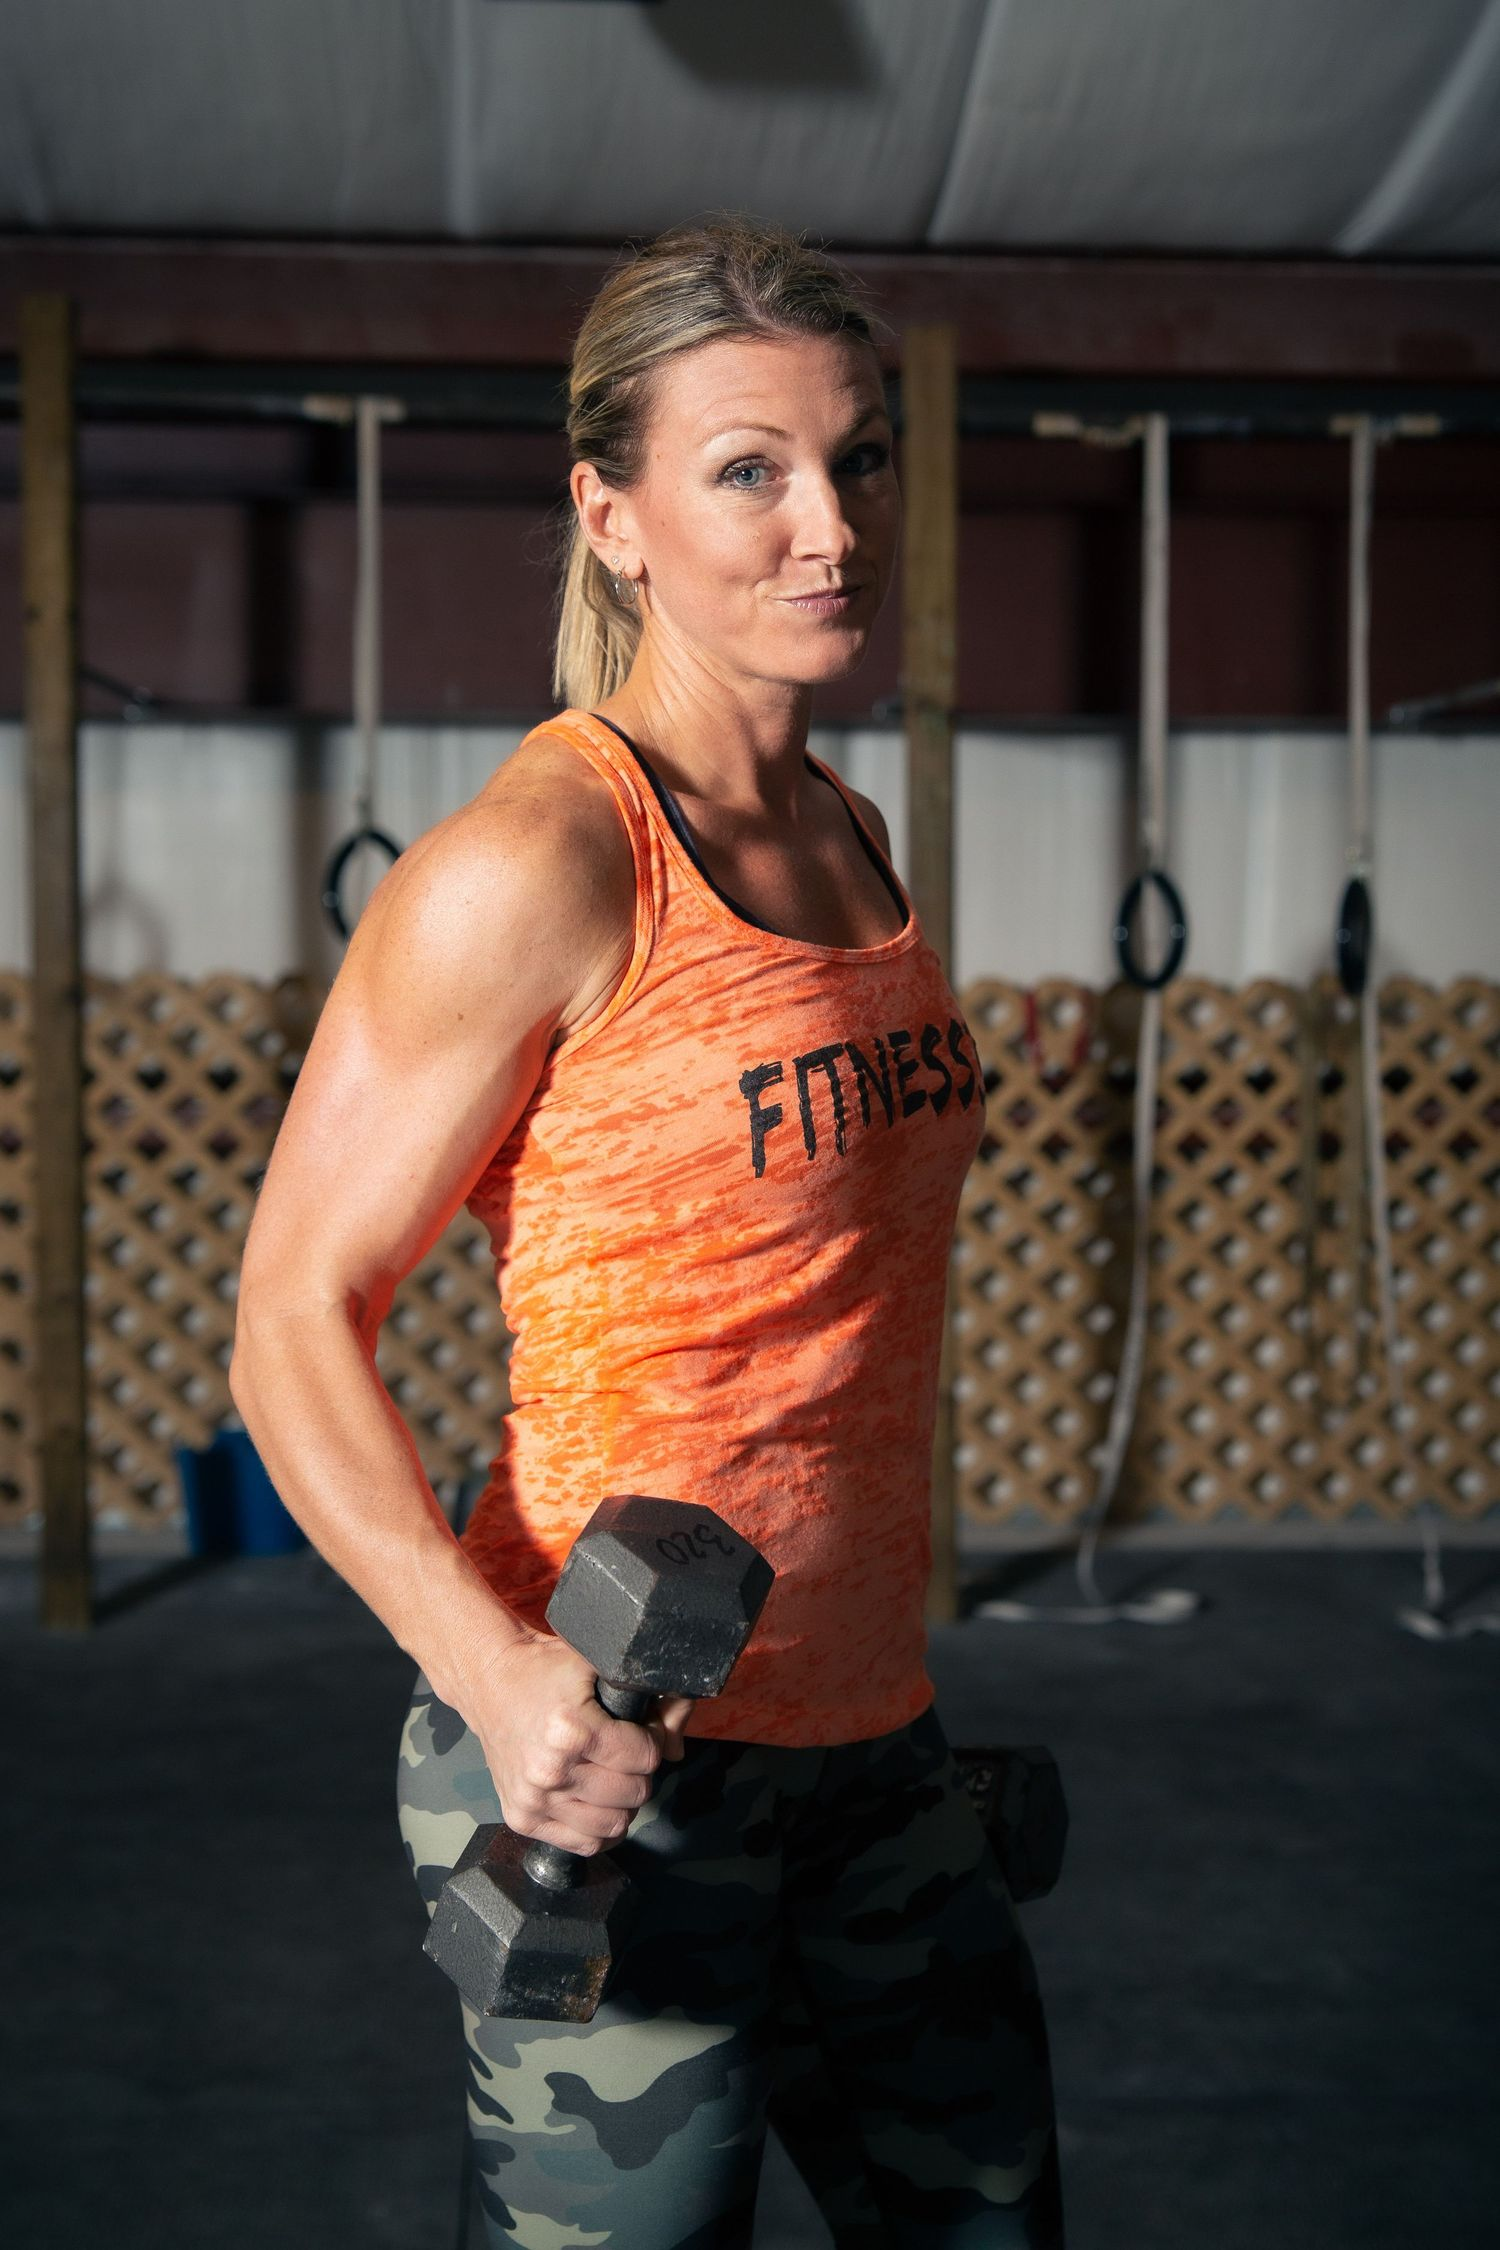 female fitness instructor posing with weights in gym